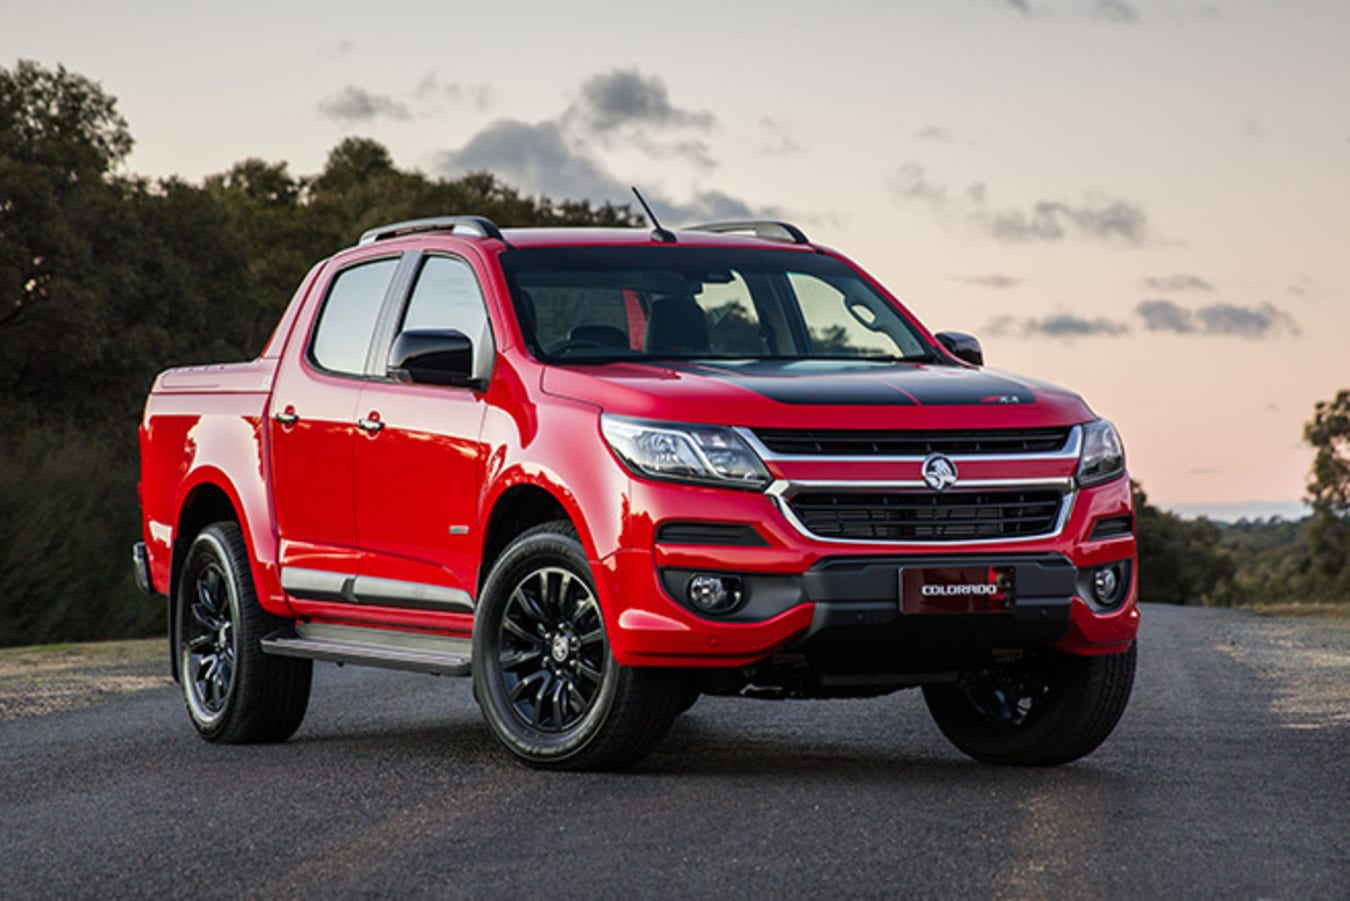 Holden Colorado front side